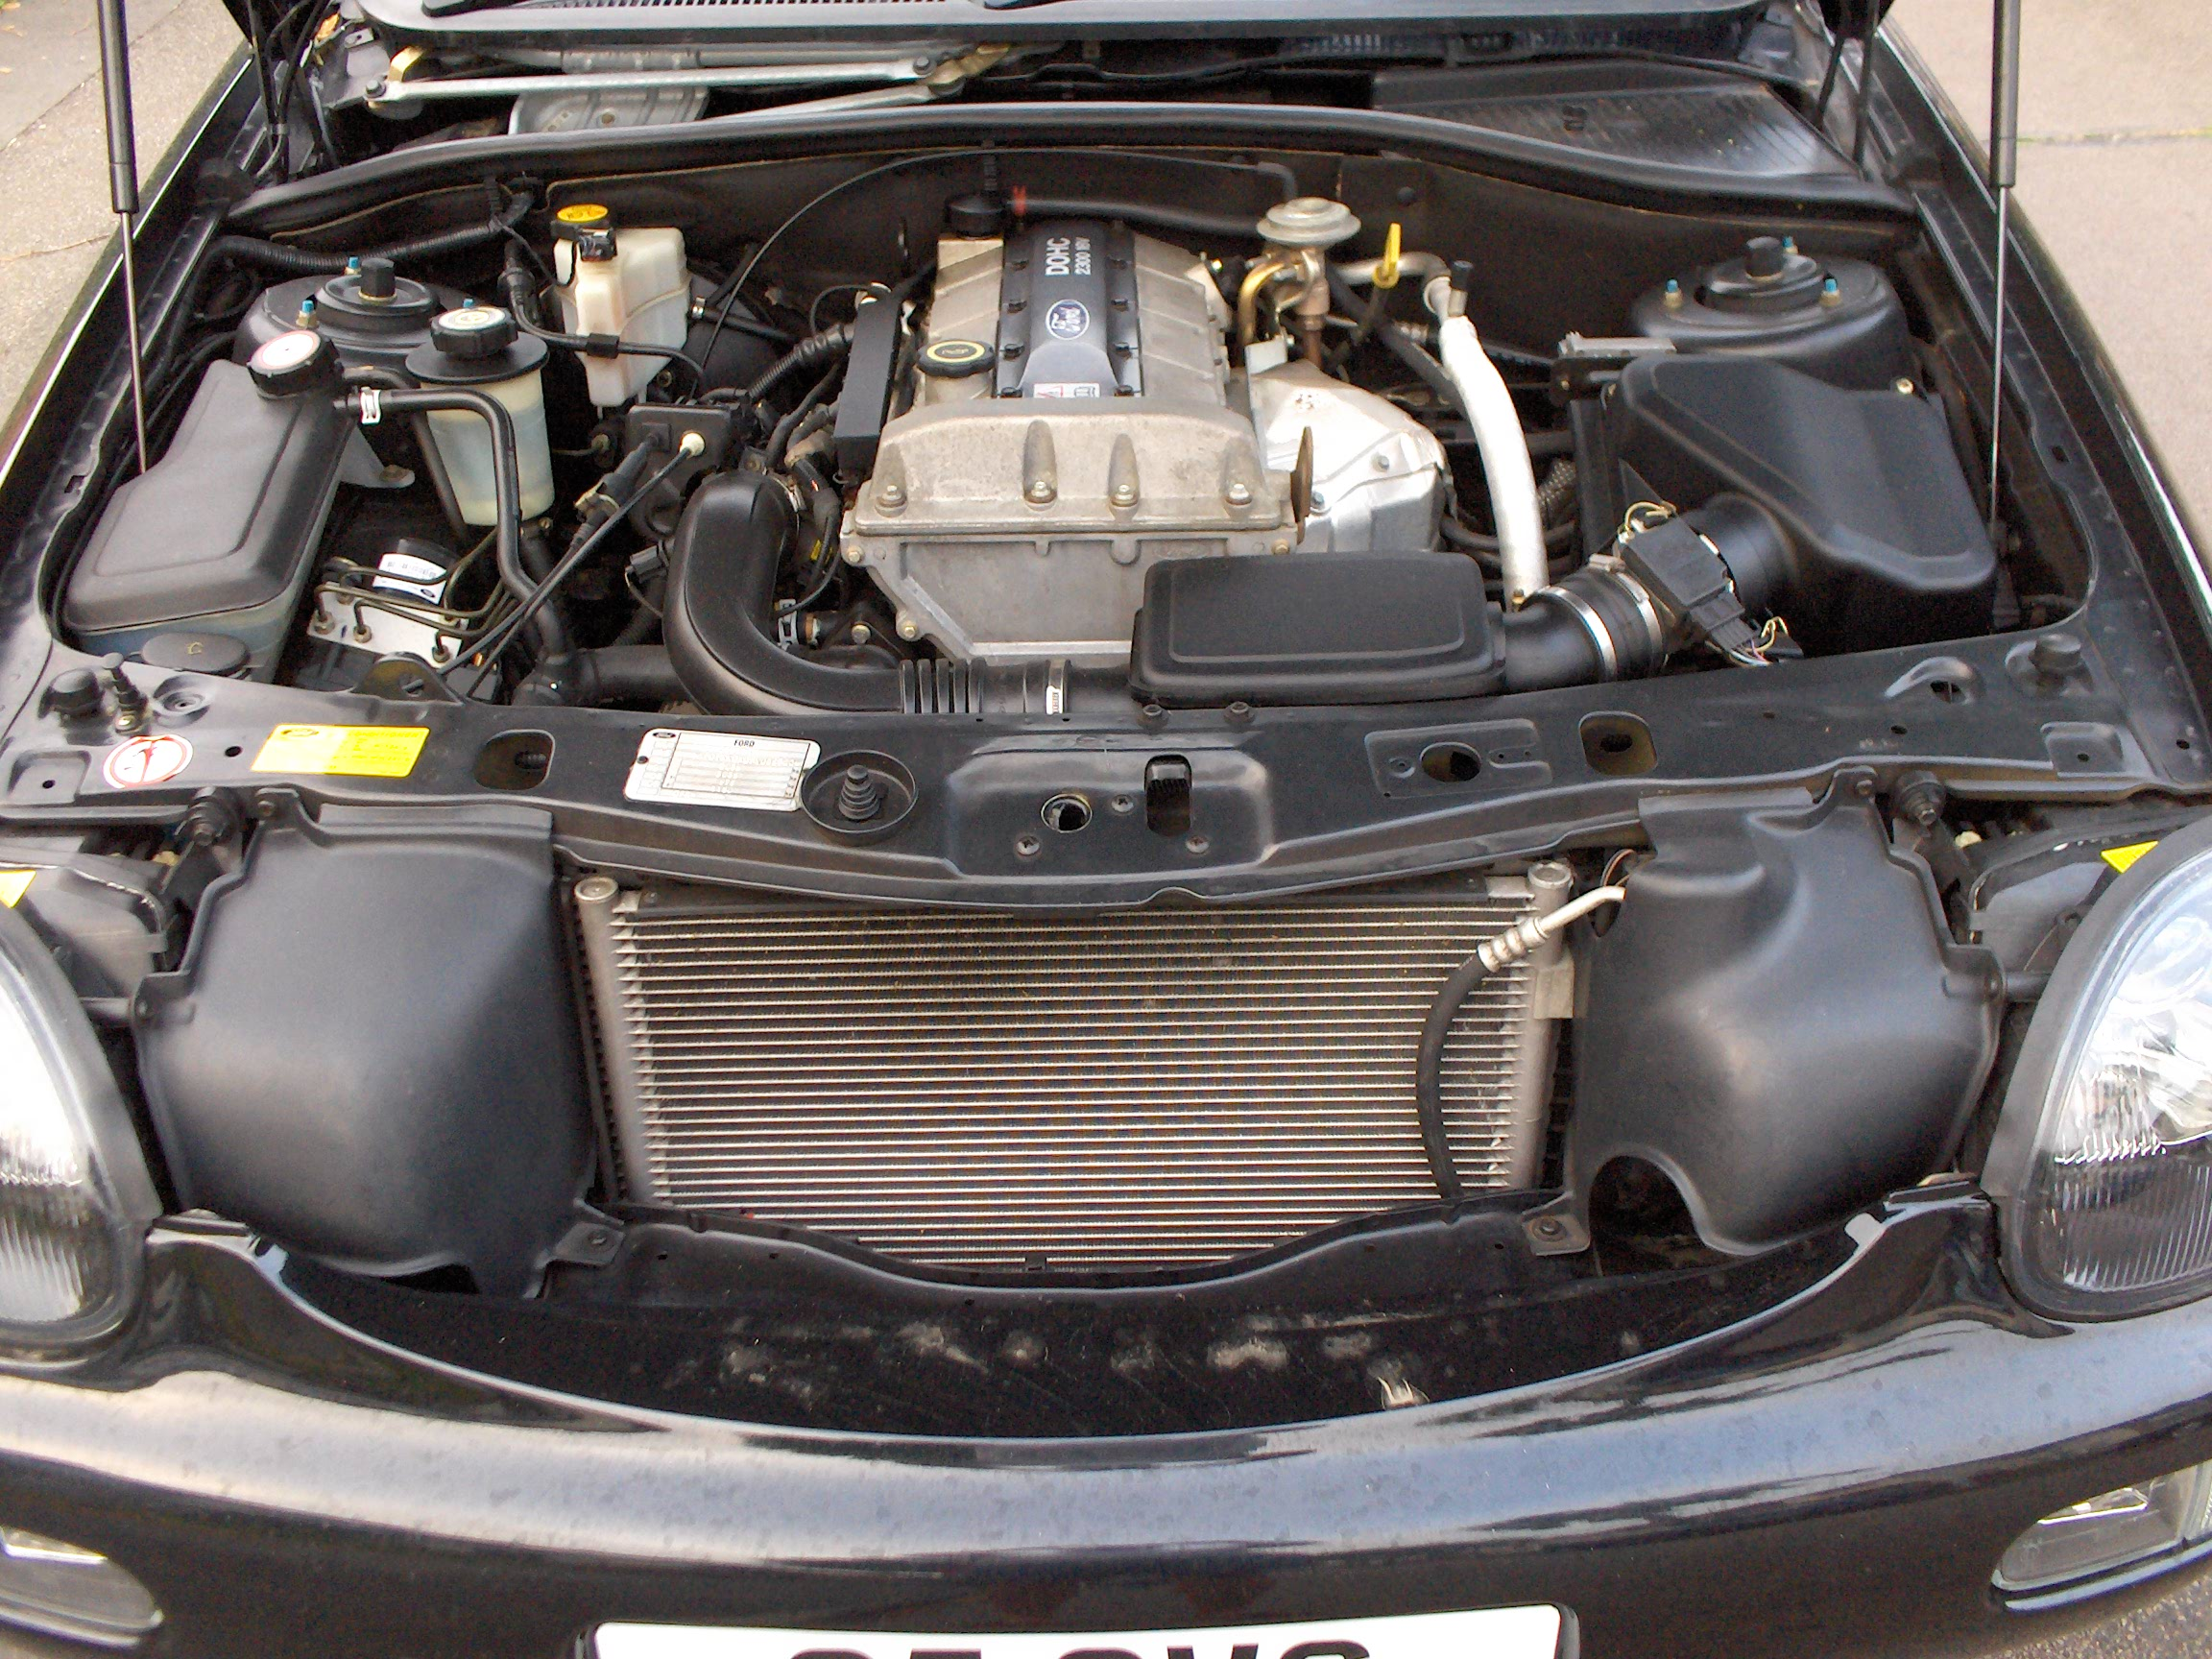 FORD SCORPIO engine